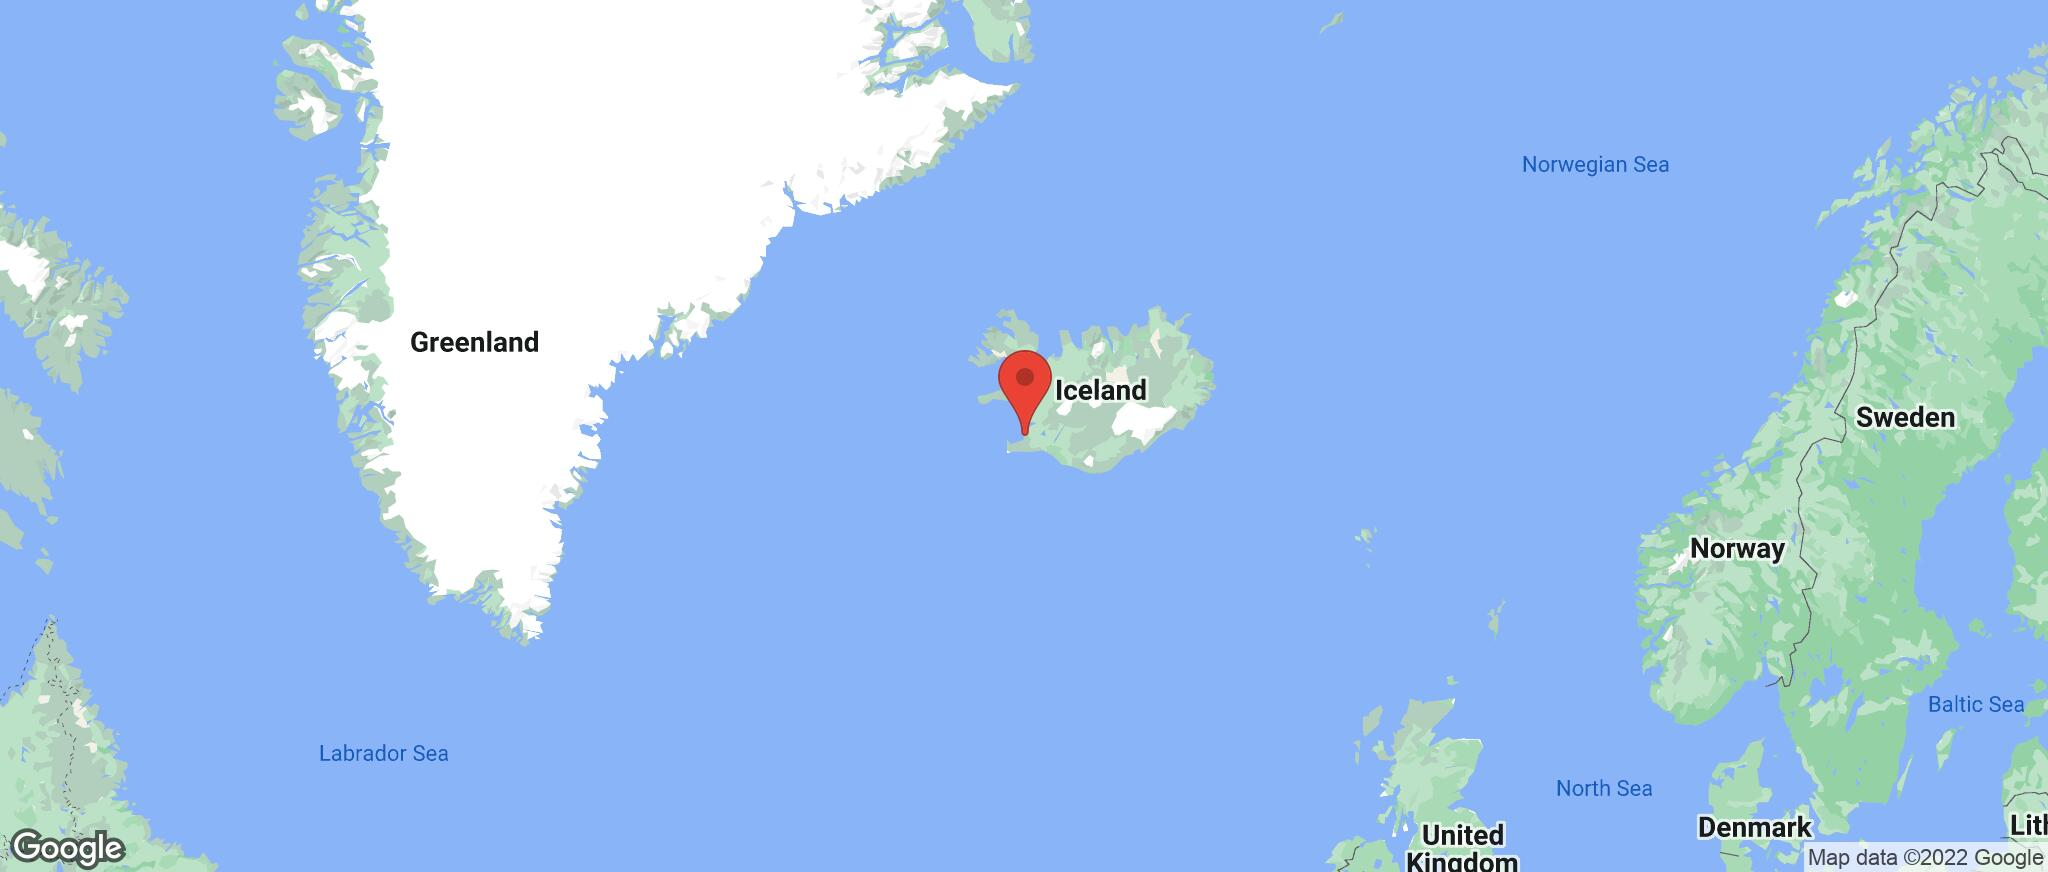 Map showing the location of Iceland